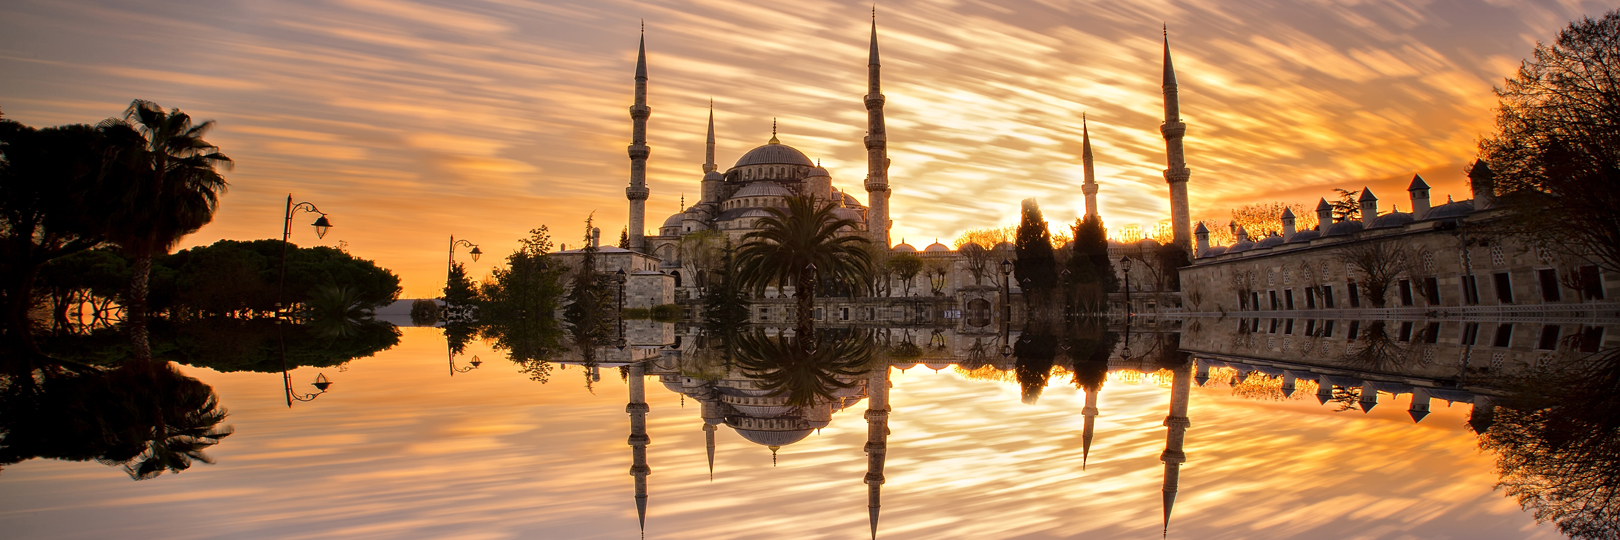 $249 to visit Istanbul!